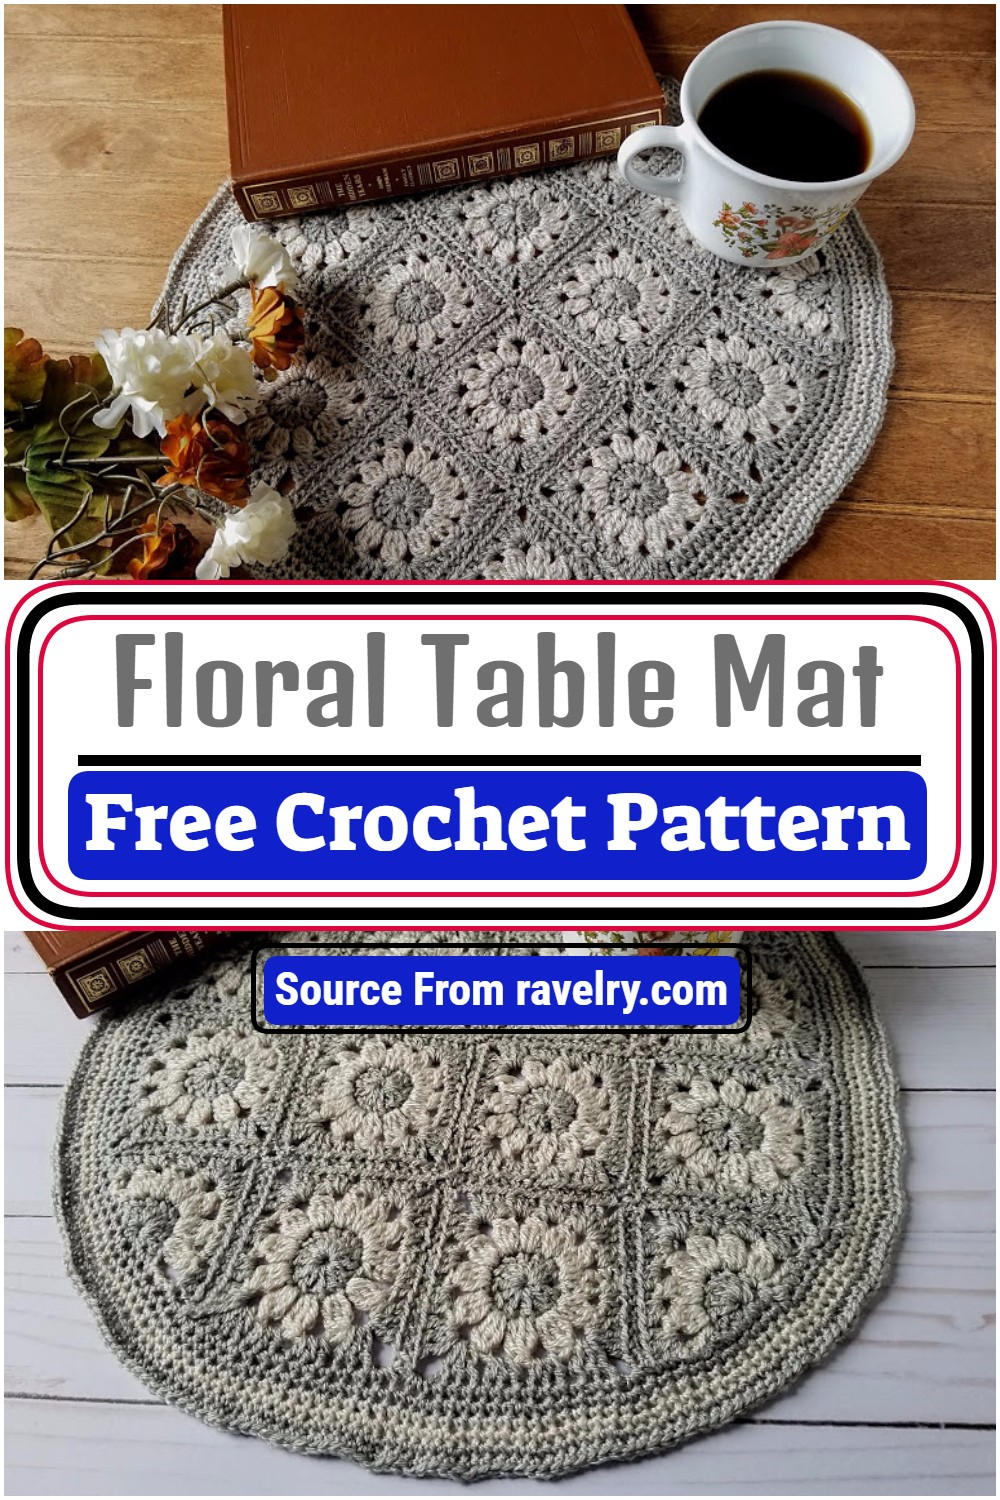 Free Crochet Floral Table Mat Pattern